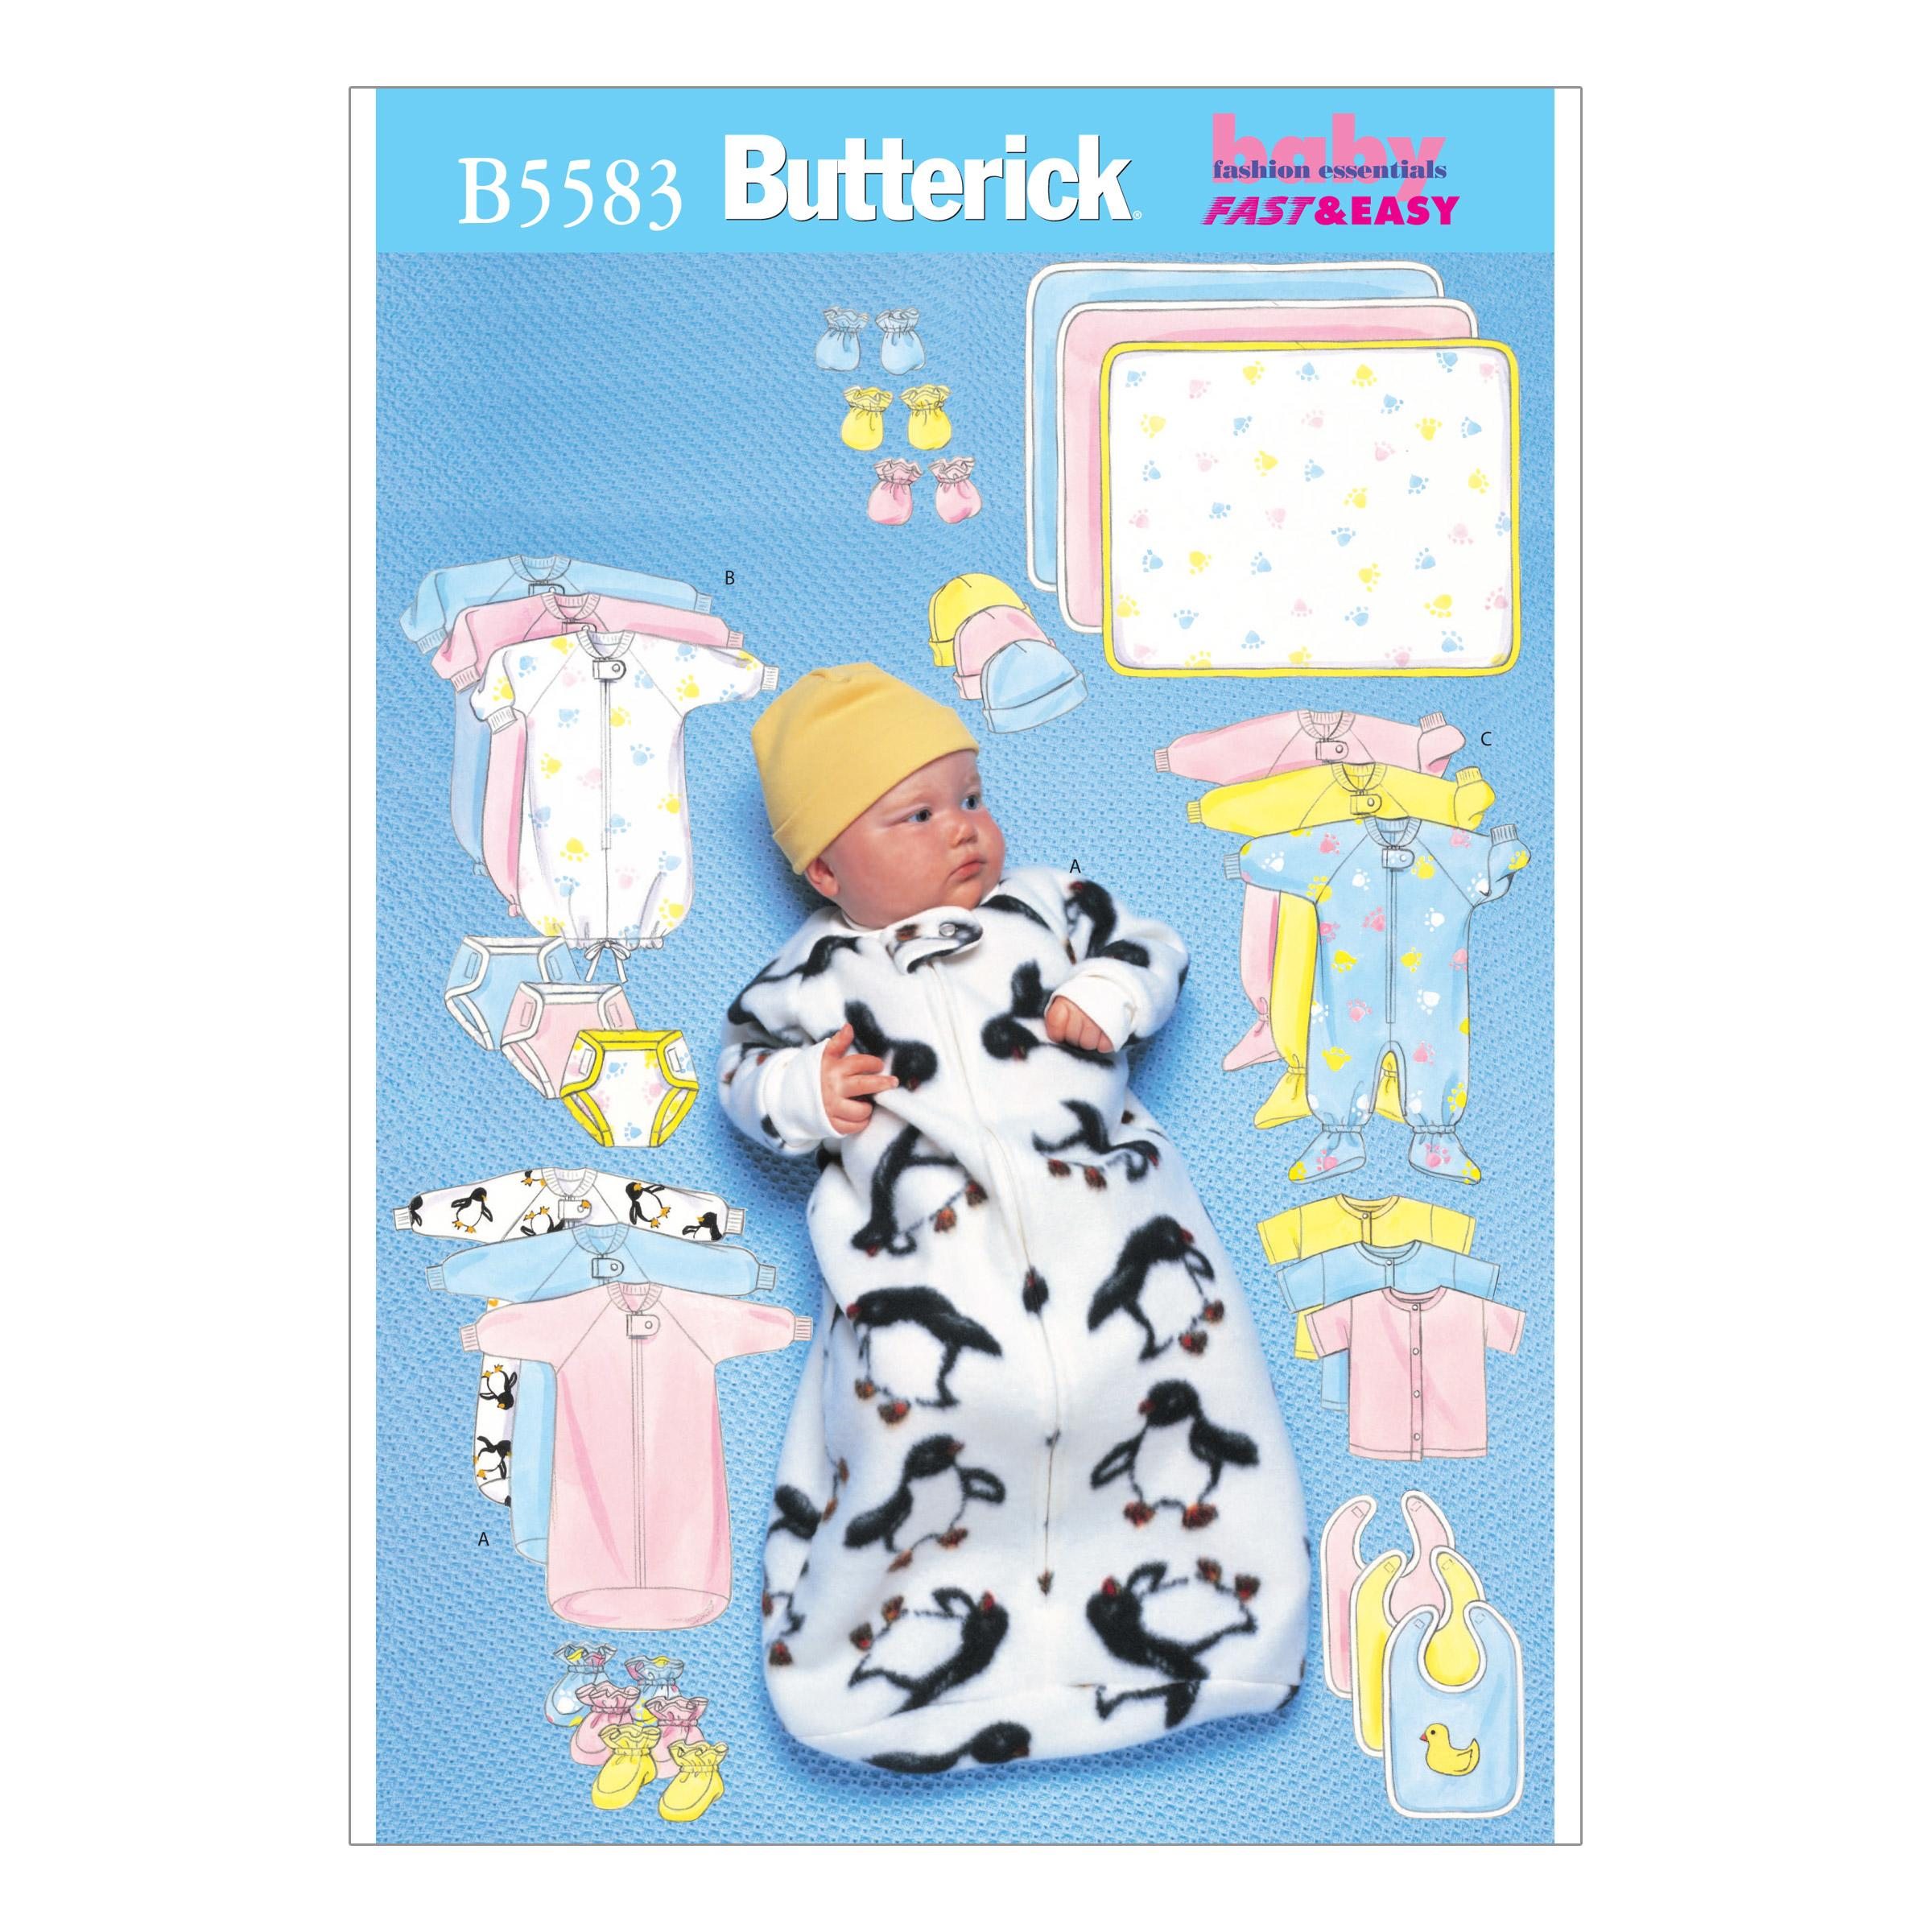 Butterick B5583 Infants' Bunting, Jumpsuit, Shirt, Diaper Cover, Blanket, Hat, Bib, Mittens and Booties